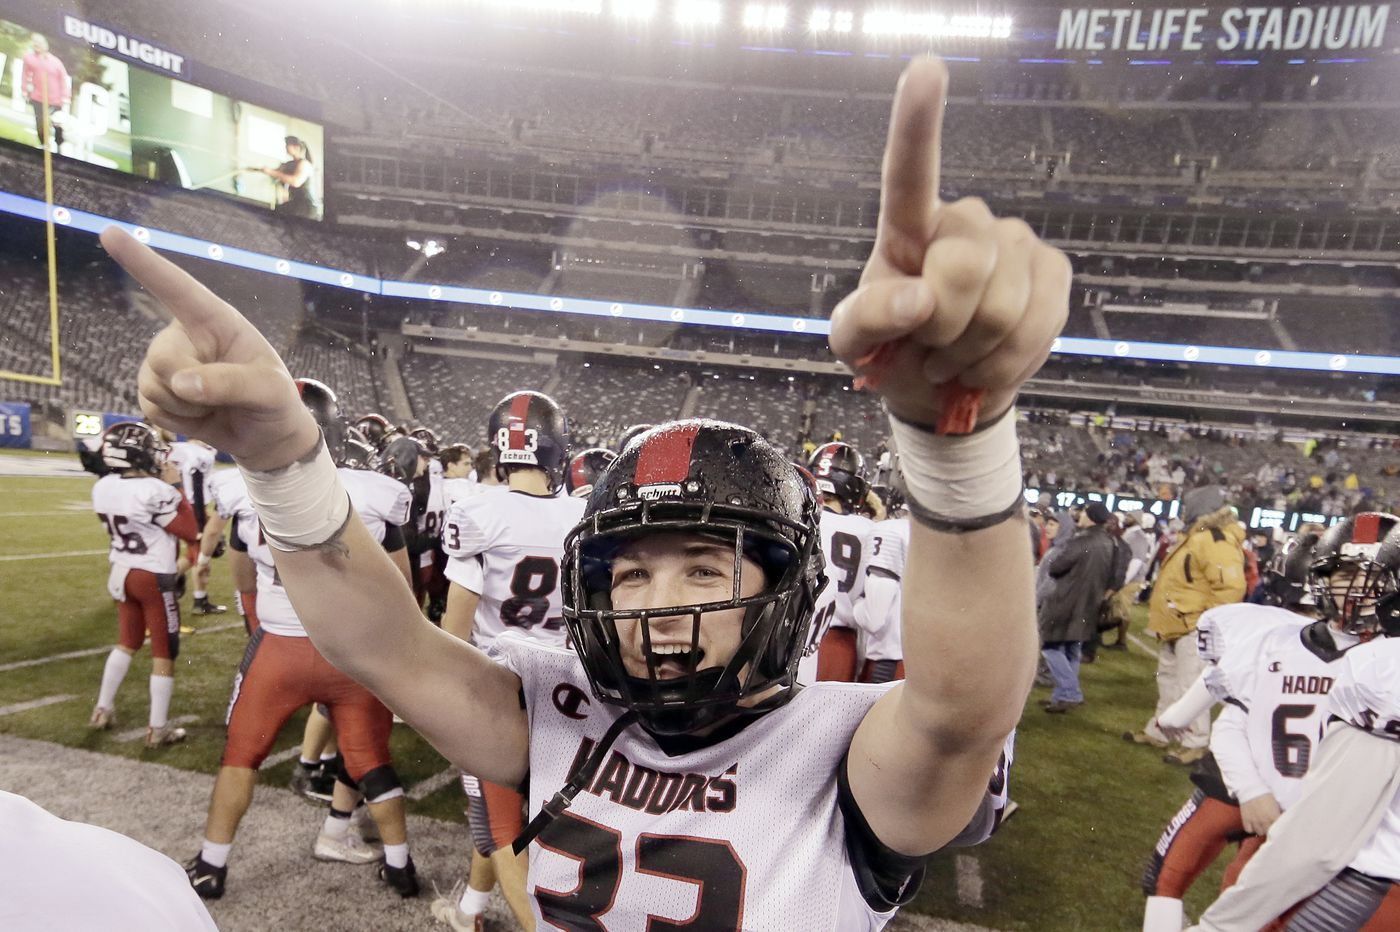 Davis Smith powers Haddonfield past Hillside in Bowl Game at MetLife Stadium